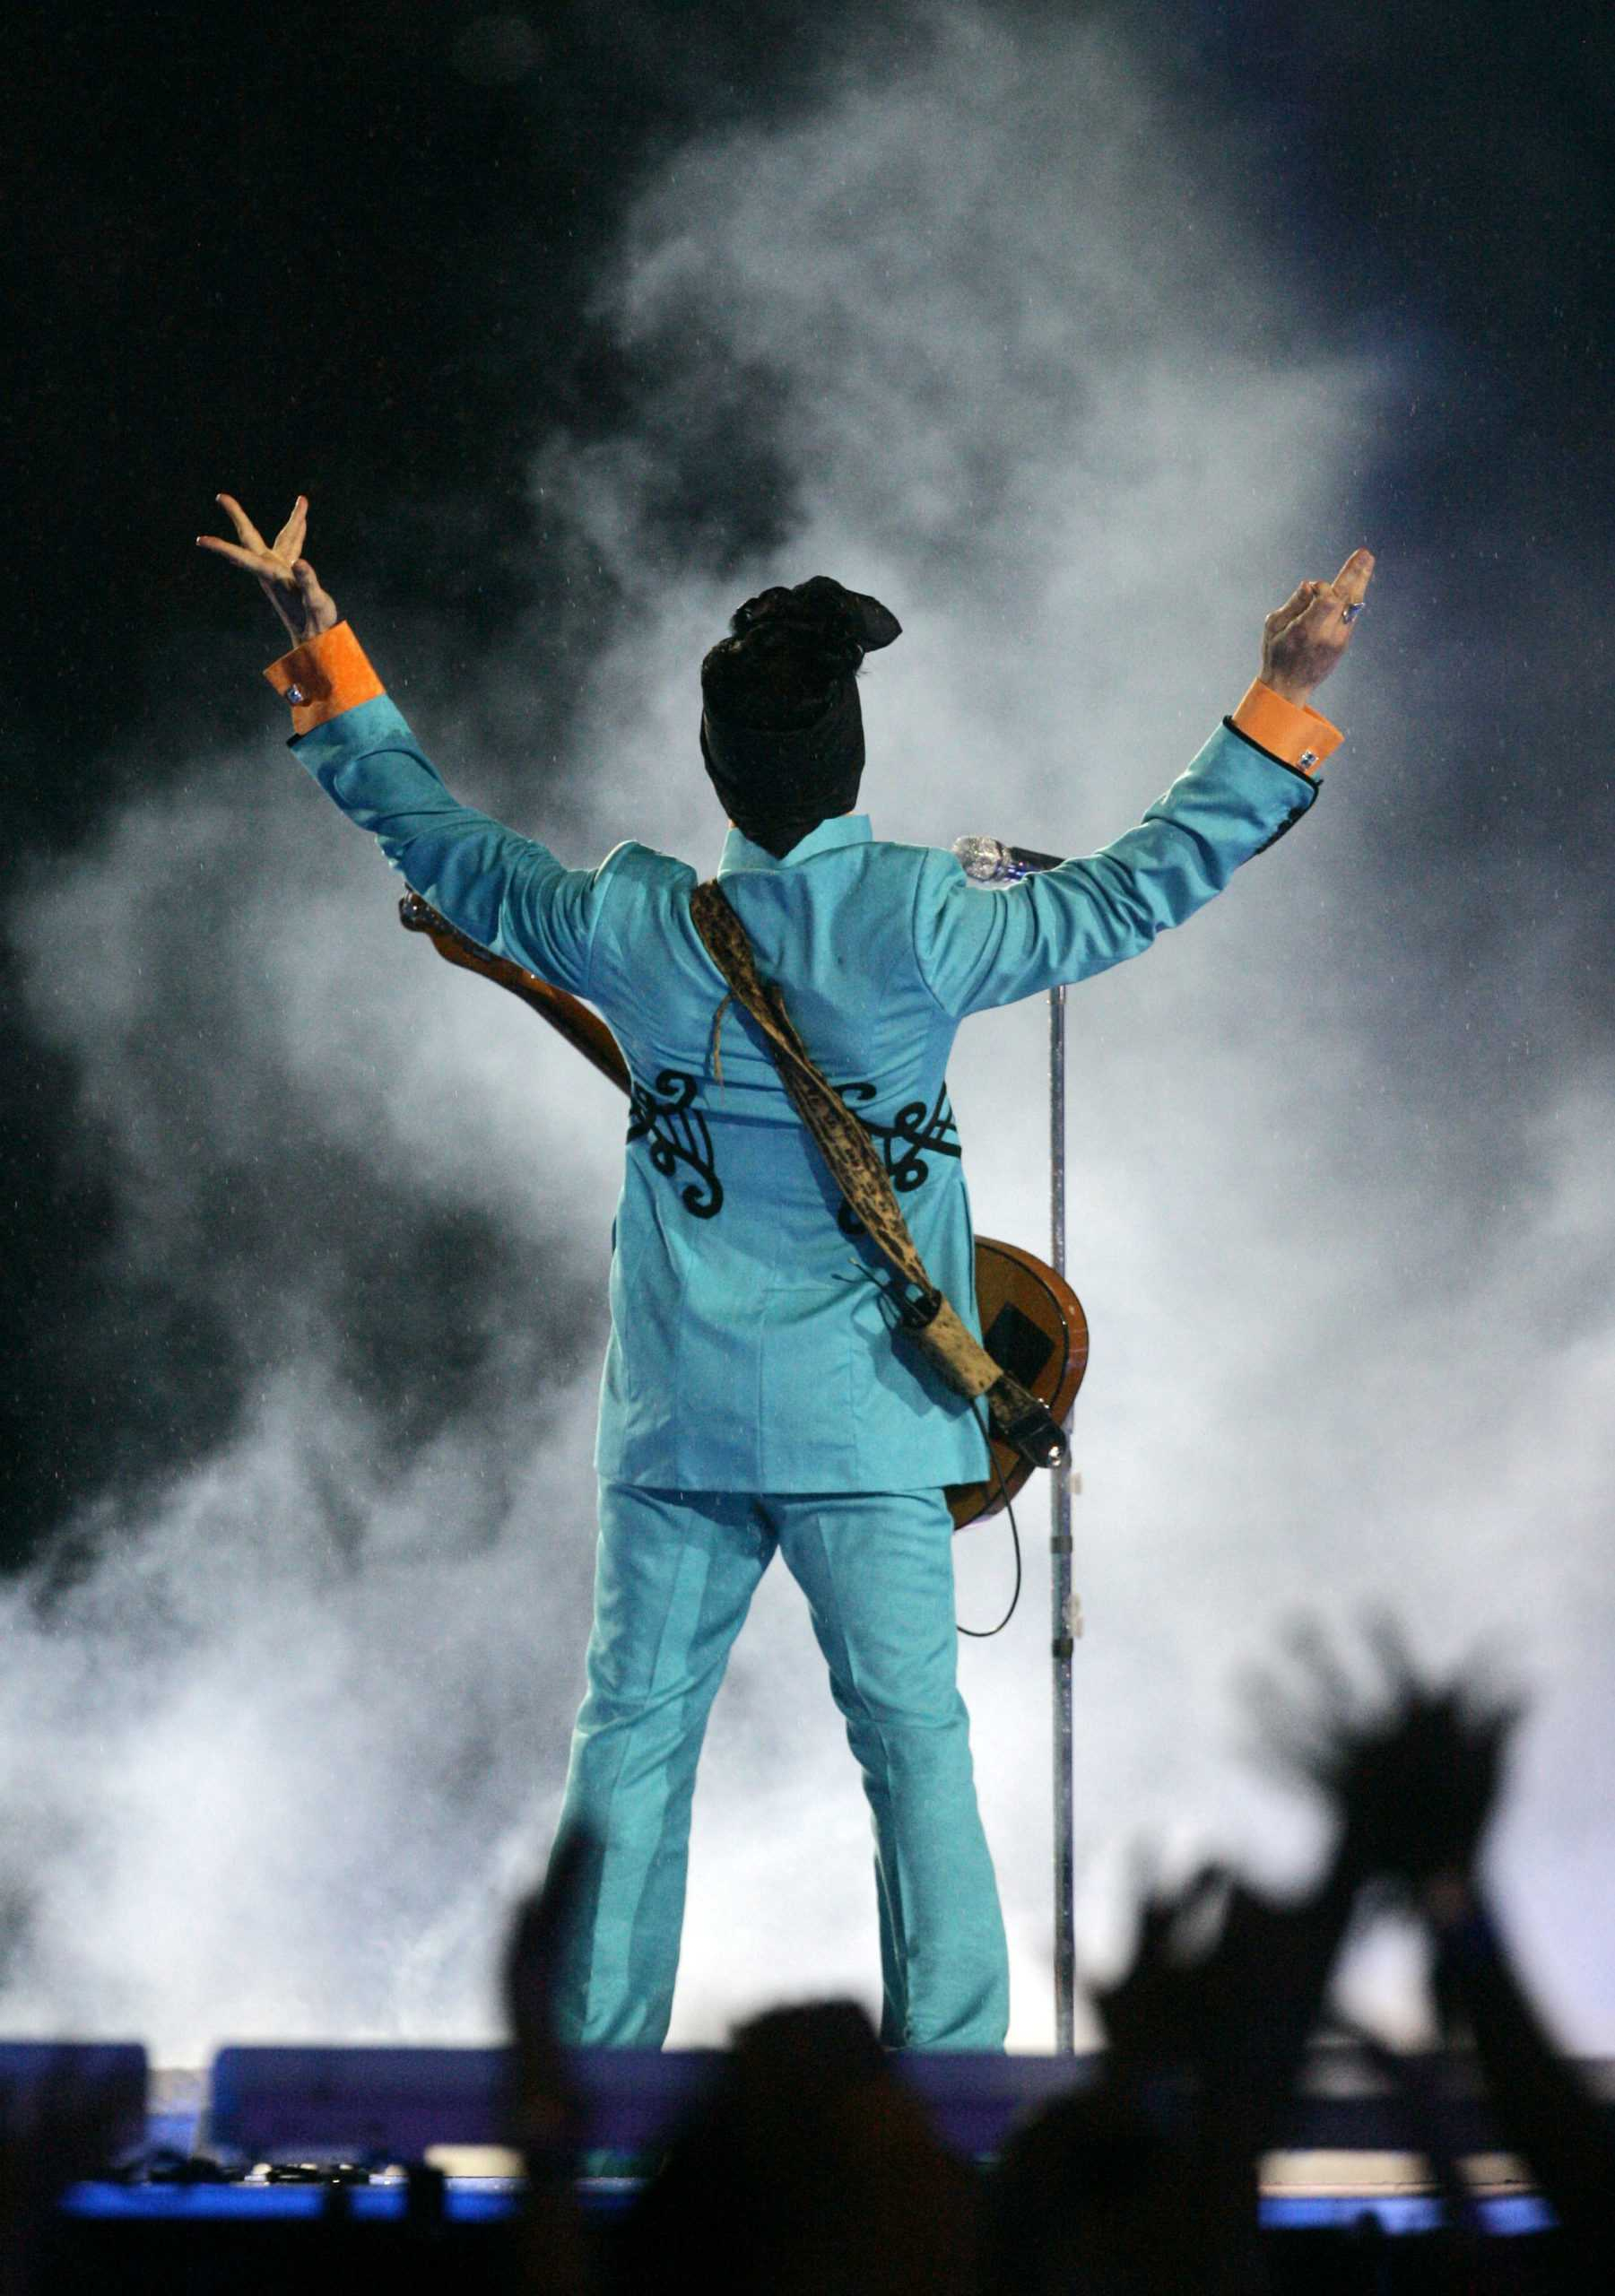 FILE - In this Feb. 4, 2007 file photo, Prince performs during the halftime show at Super Bowl XLI at Dolphin Stadium in Miami. Prince's publicist has confirmed that Prince died at his home in Minnesota, Thursday, April 21, 2016. He was 57.